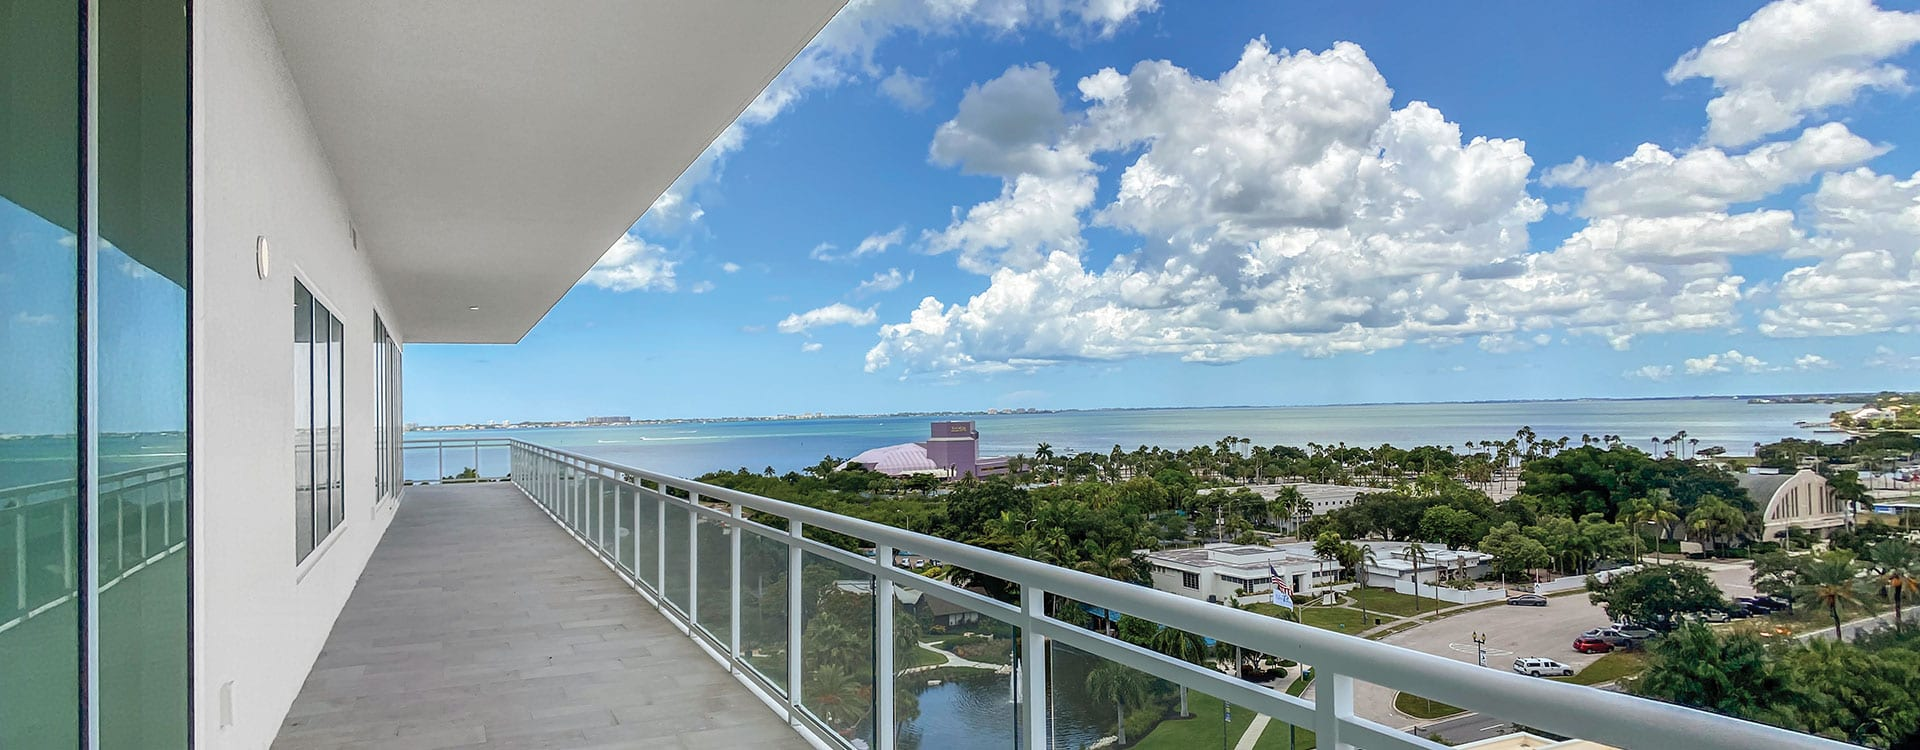 BLVD Sarasota Residence 901 Terrace with a view of the Van Wezel and the Bay